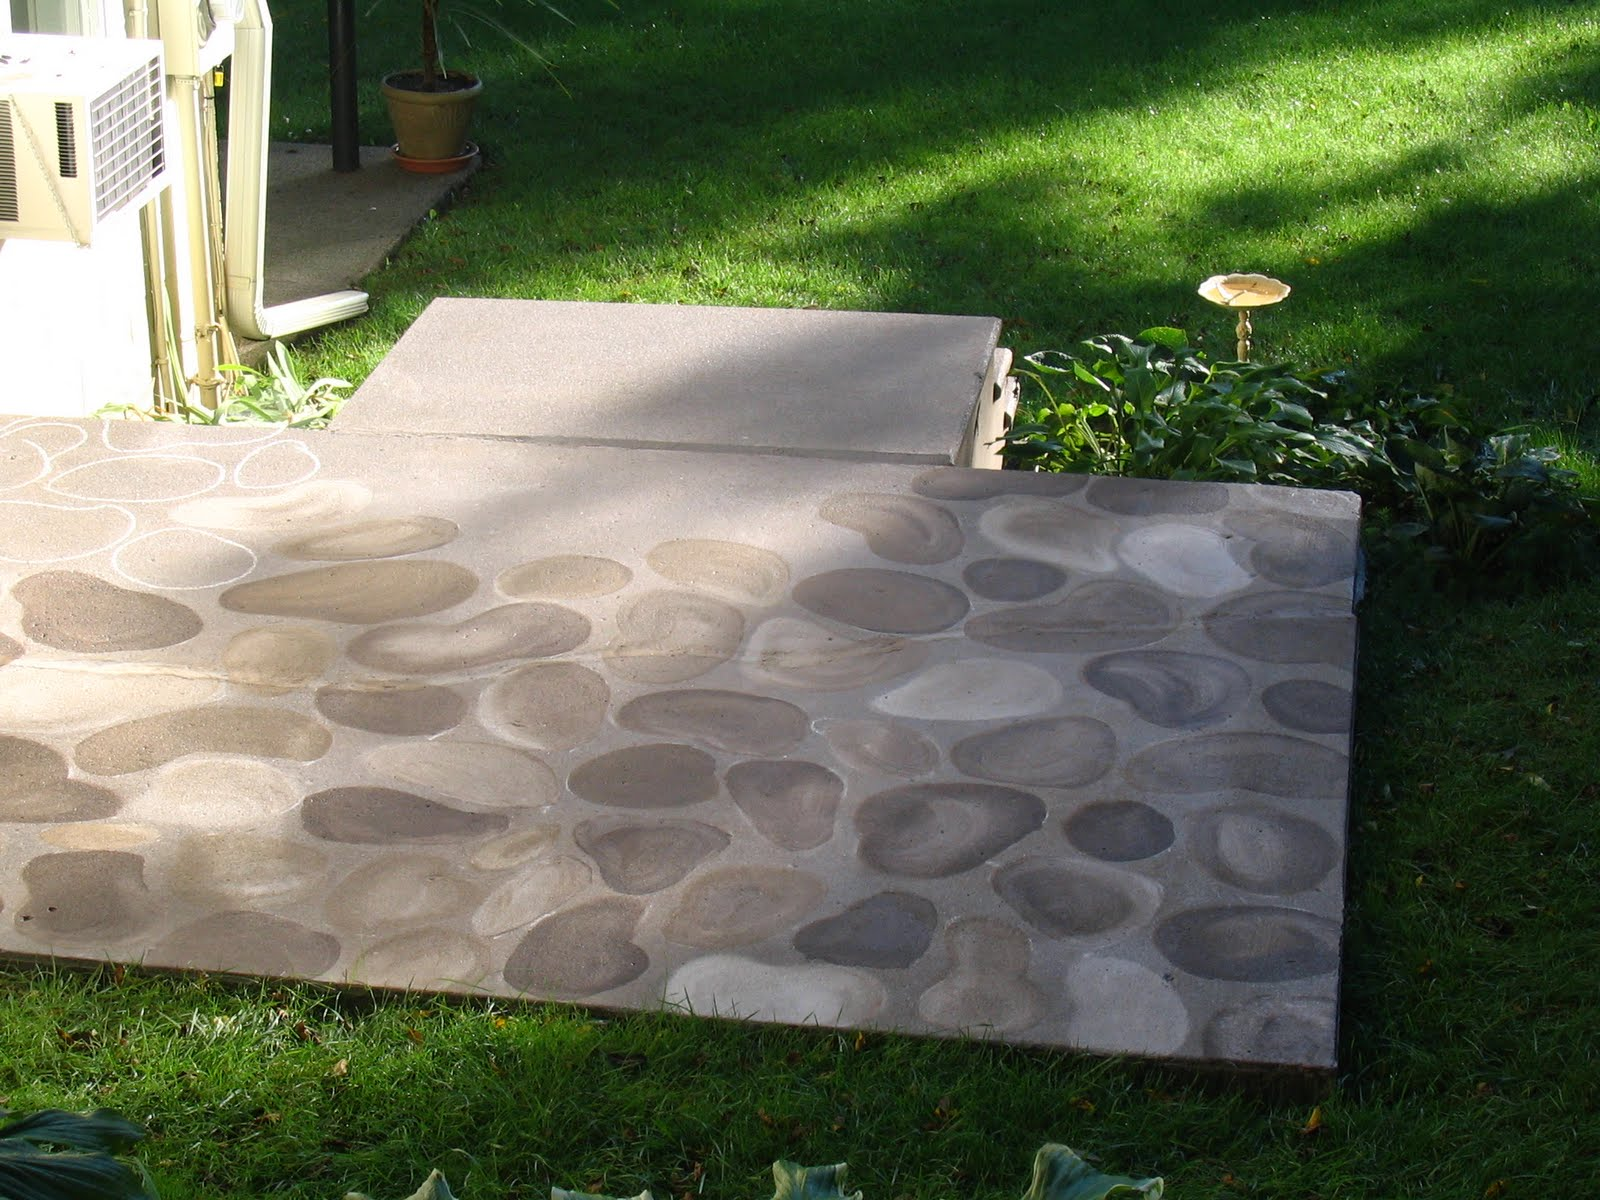 My Shabby Chateau How To Turn An Ugly Concrete Slab Into A Faux Stone Patio